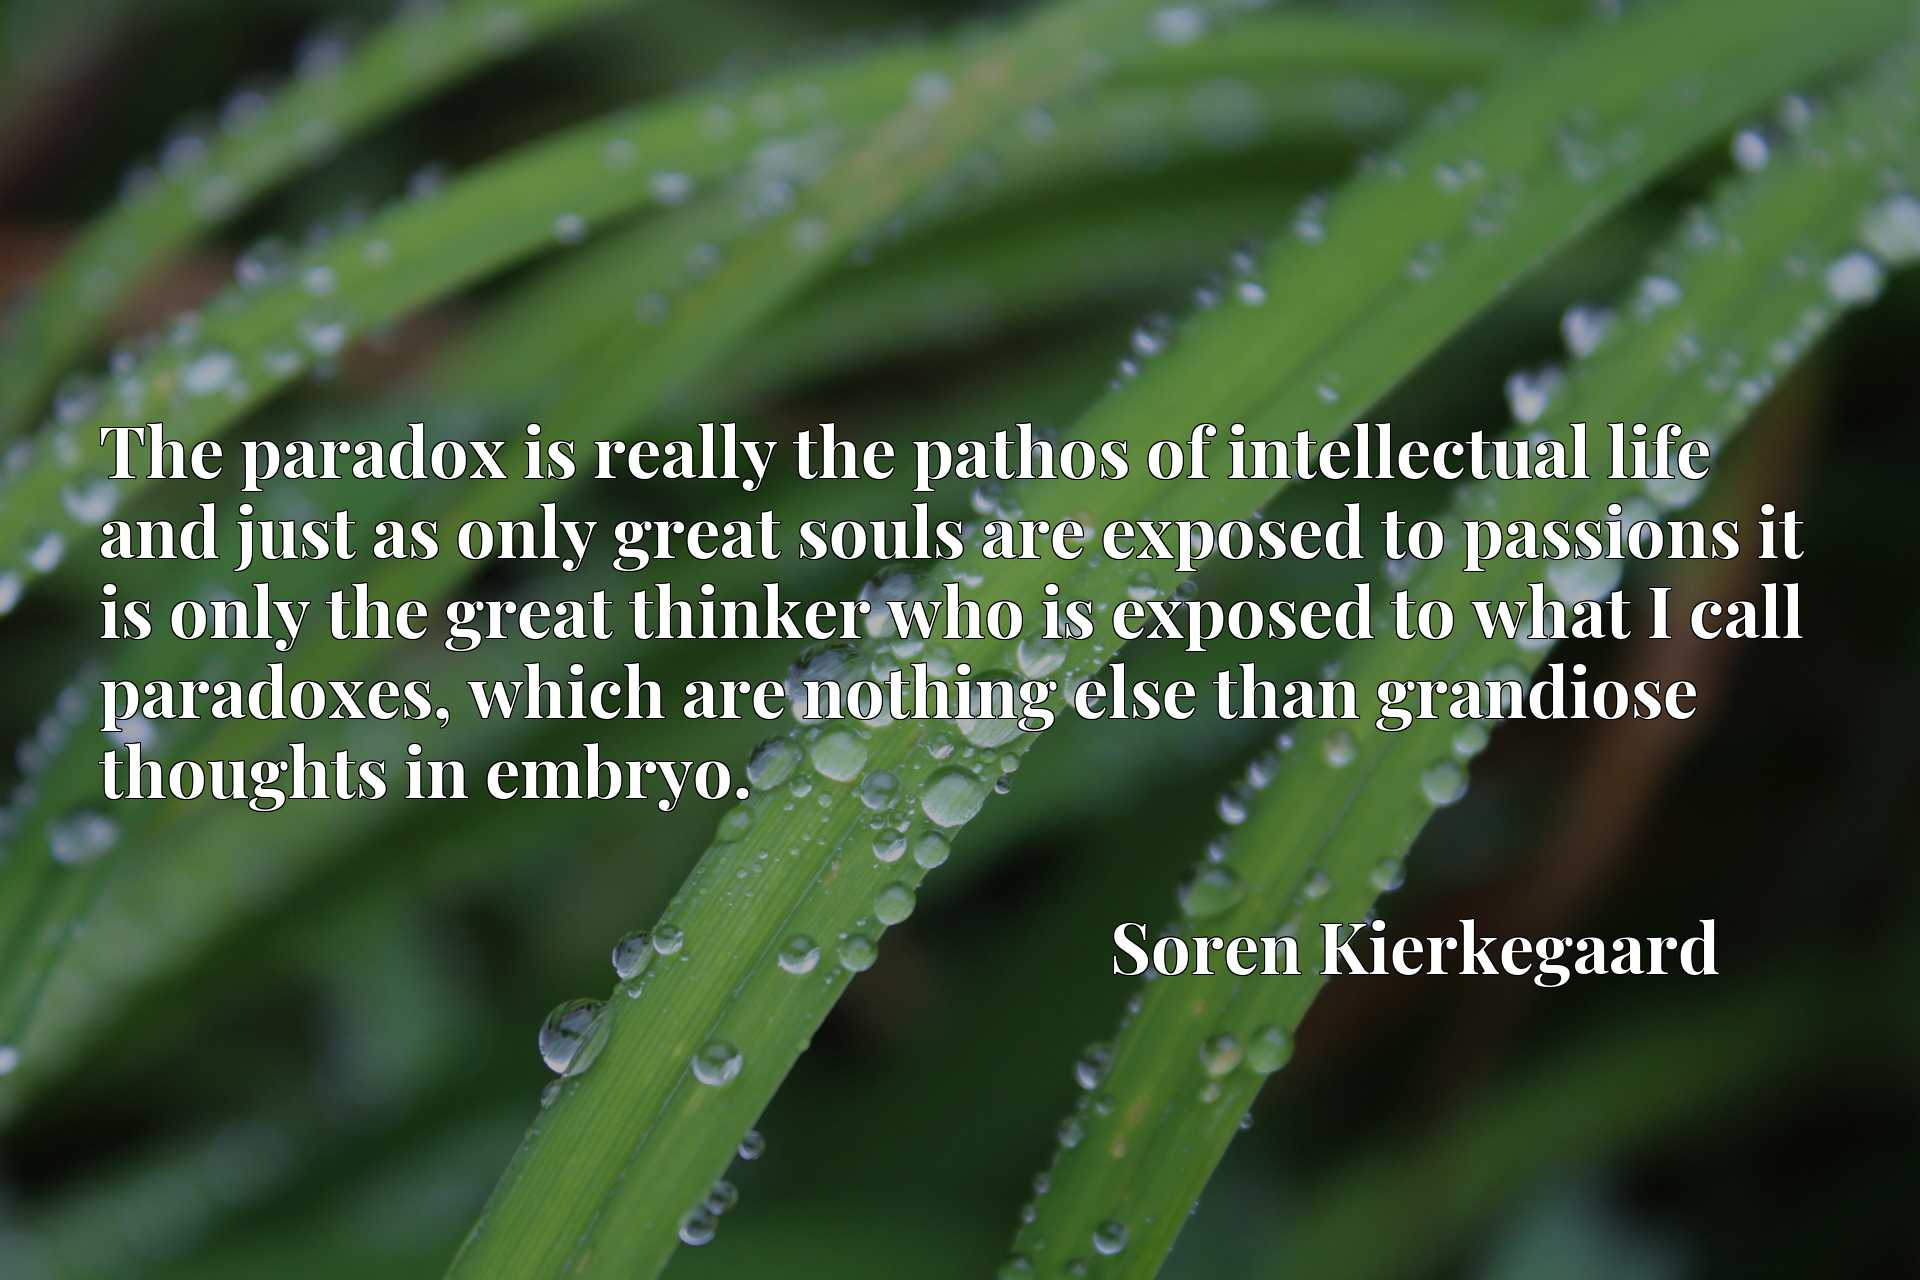 The paradox is really the pathos of intellectual life and just as only great souls are exposed to passions it is only the great thinker who is exposed to what I call paradoxes, which are nothing else than grandiose thoughts in embryo.